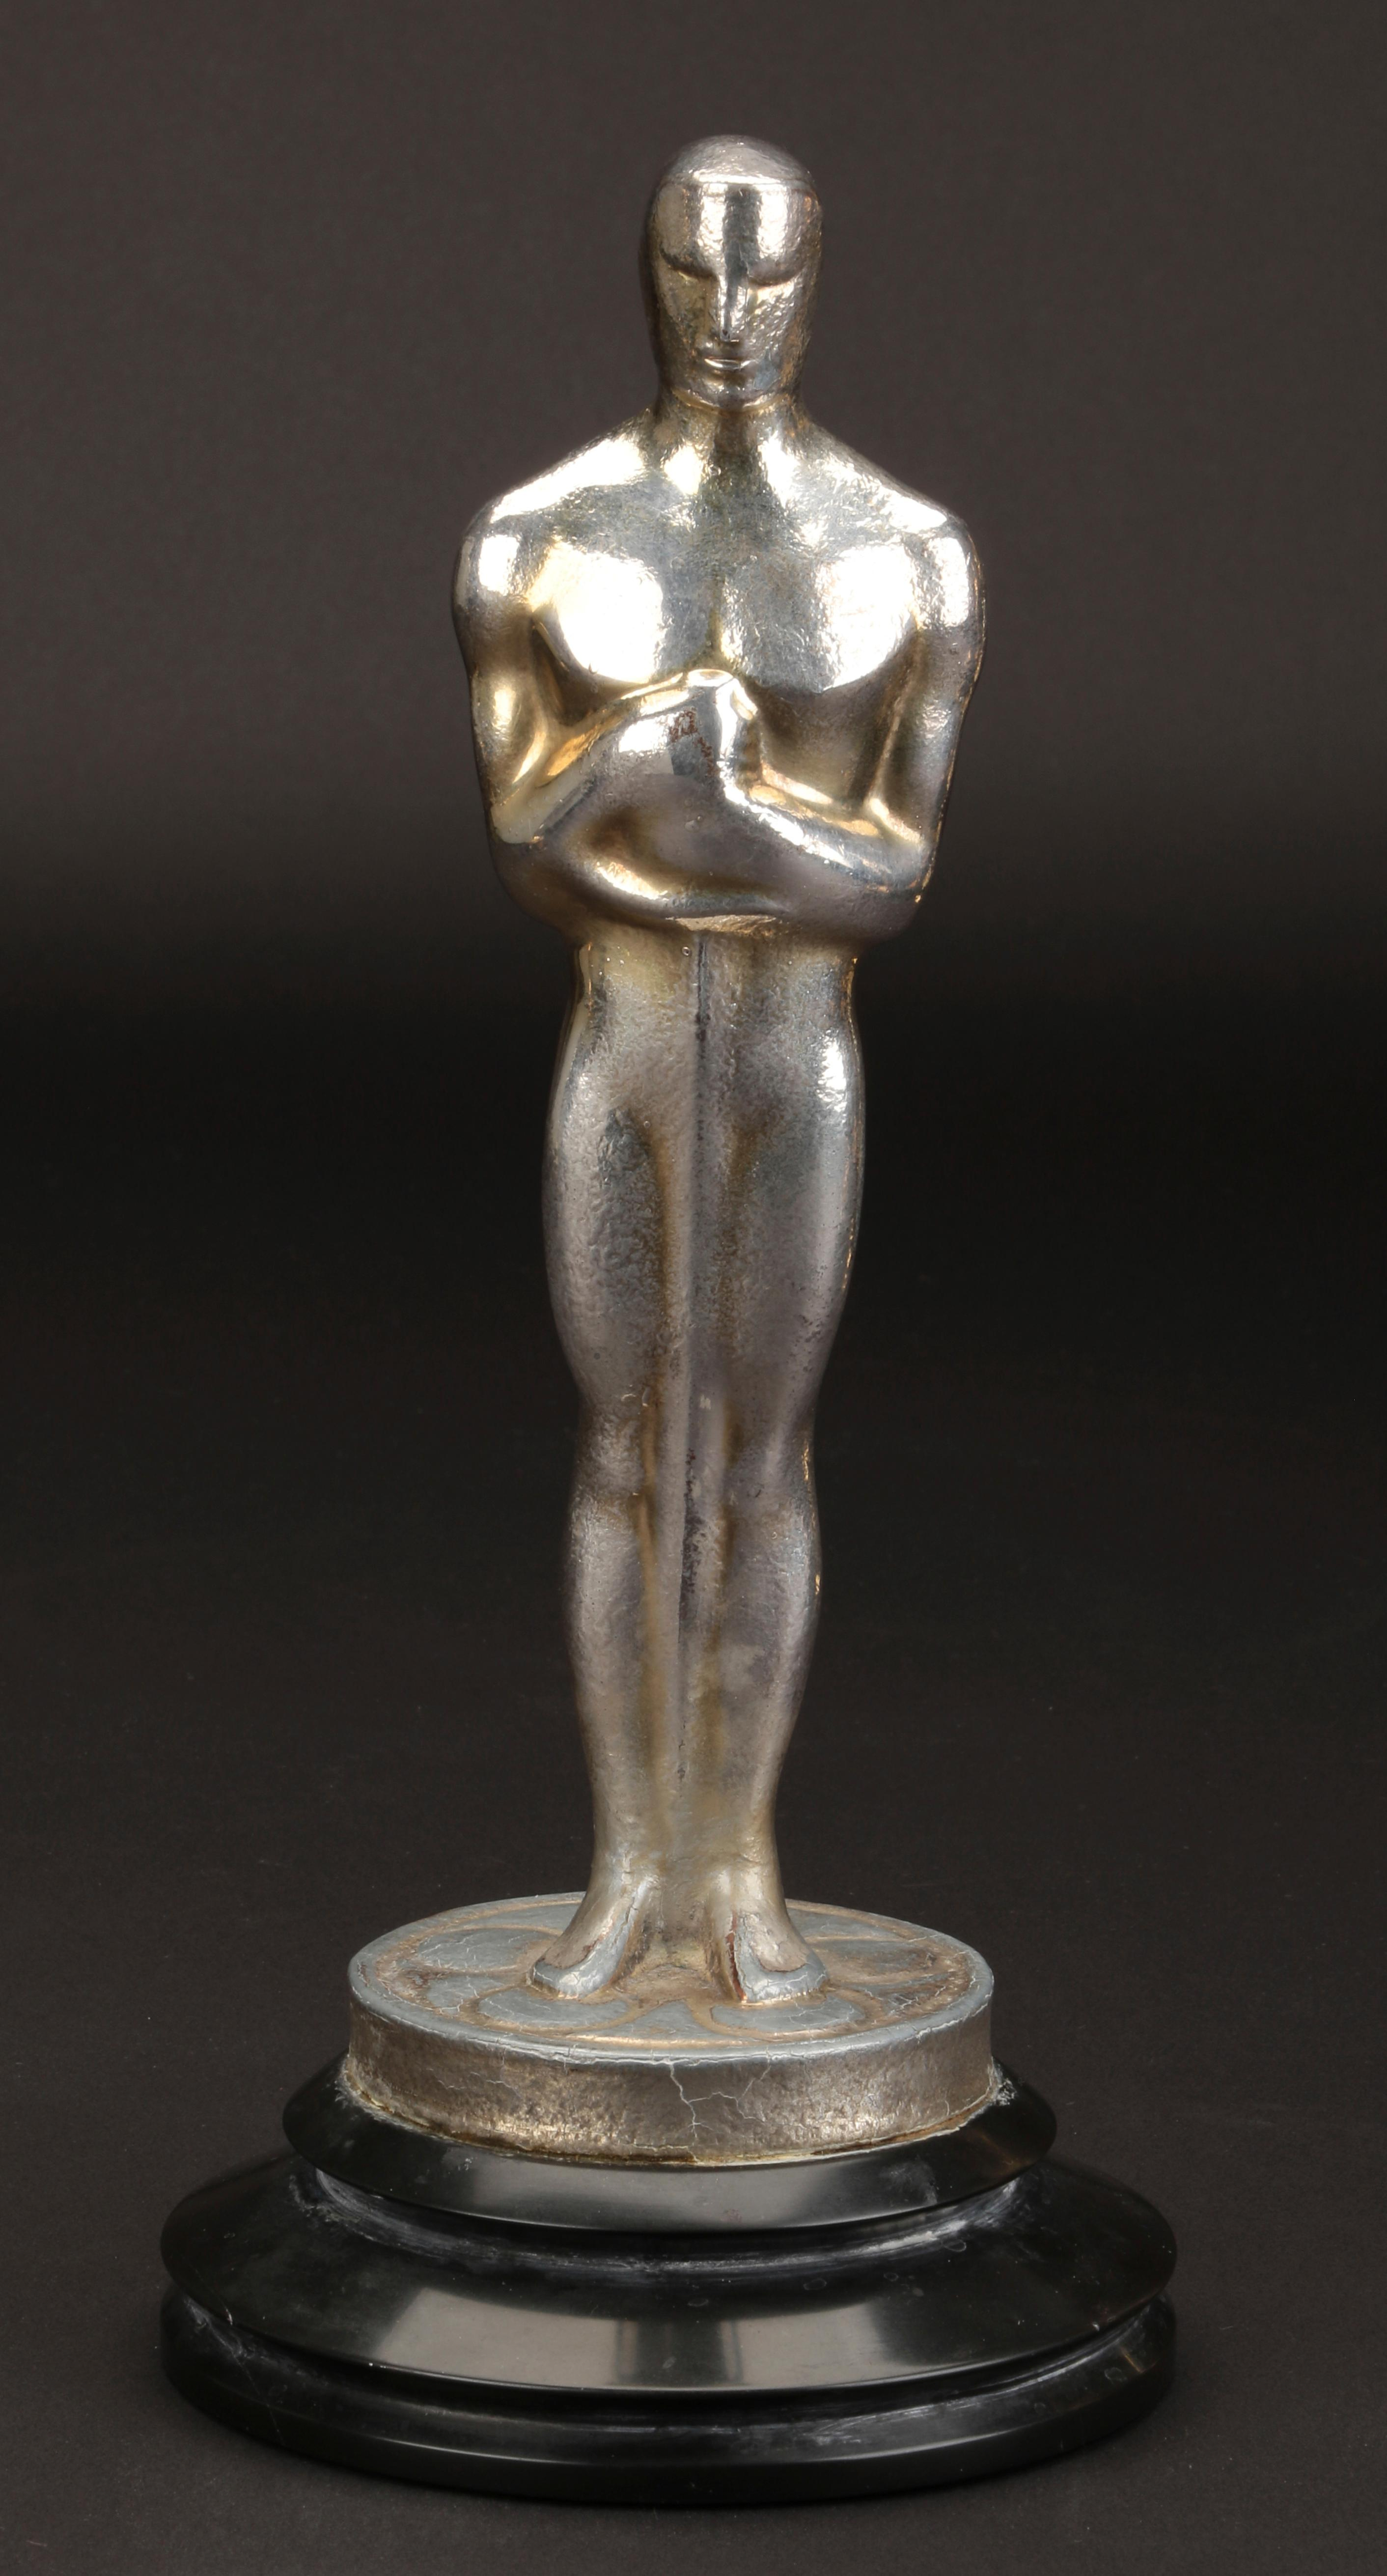 "FILE - This undated file image provided by Profiles in History shows Irving Thalberg's Academy Award for best picture for ""Mutiny on the Bounty."" The best picture statuette for 1935's ""Mutiny on the Bounty"" fetched $240,000., in a rare auction of Oscars that ended Friday, Dec. 14, 2018, in Los Angeles. (Lou Bustamante/Profiles in History via AP, File)"